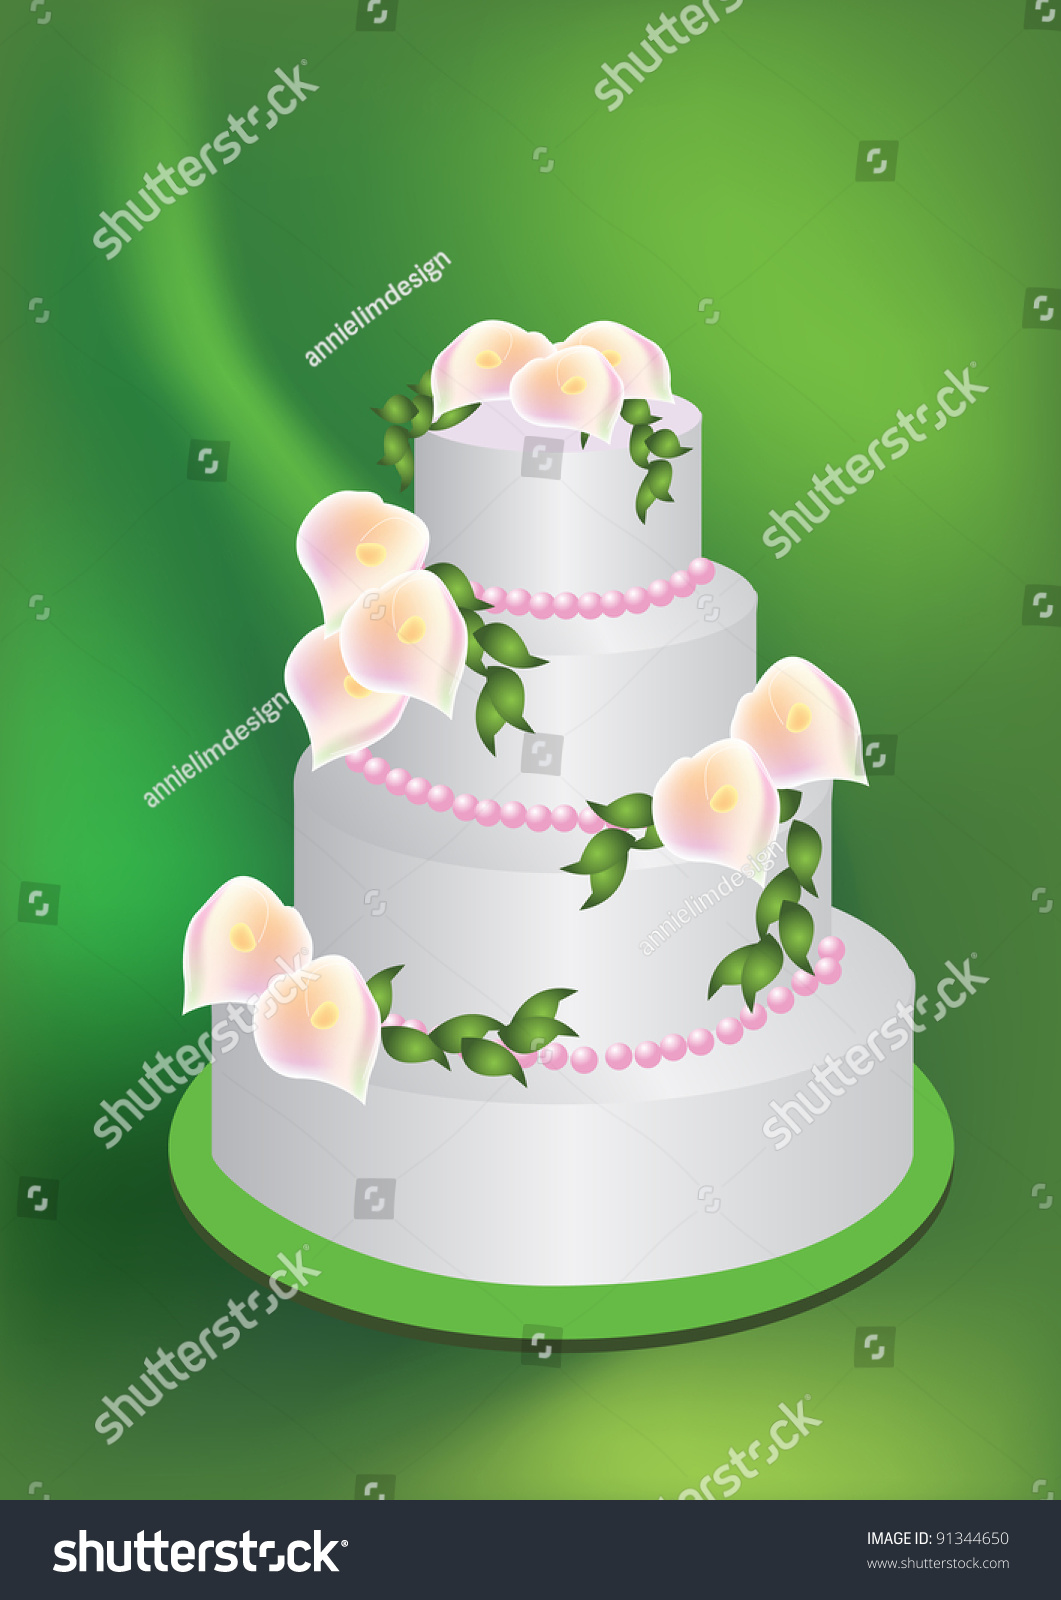 Illustration Wedding Cake Lily Flowers On Stock Illustration